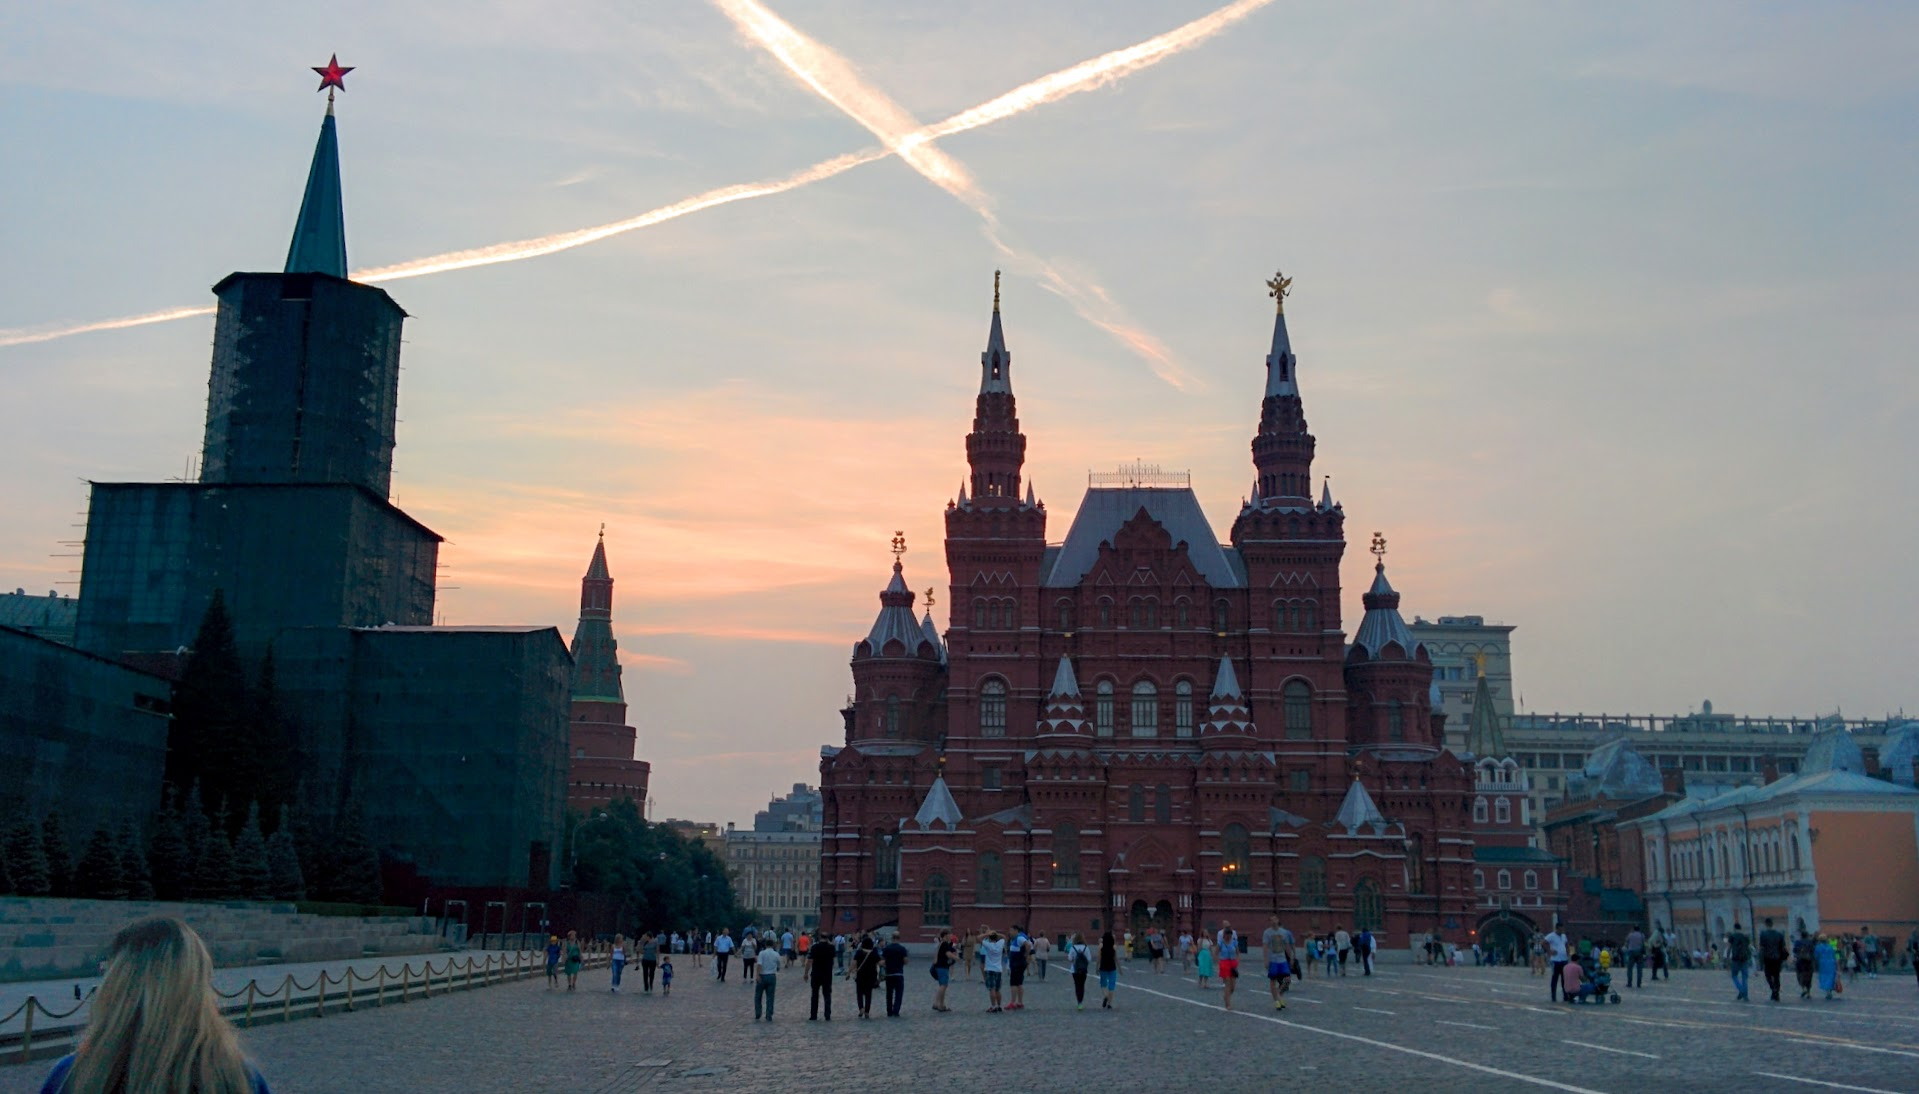 State Historical Museuem of Russia